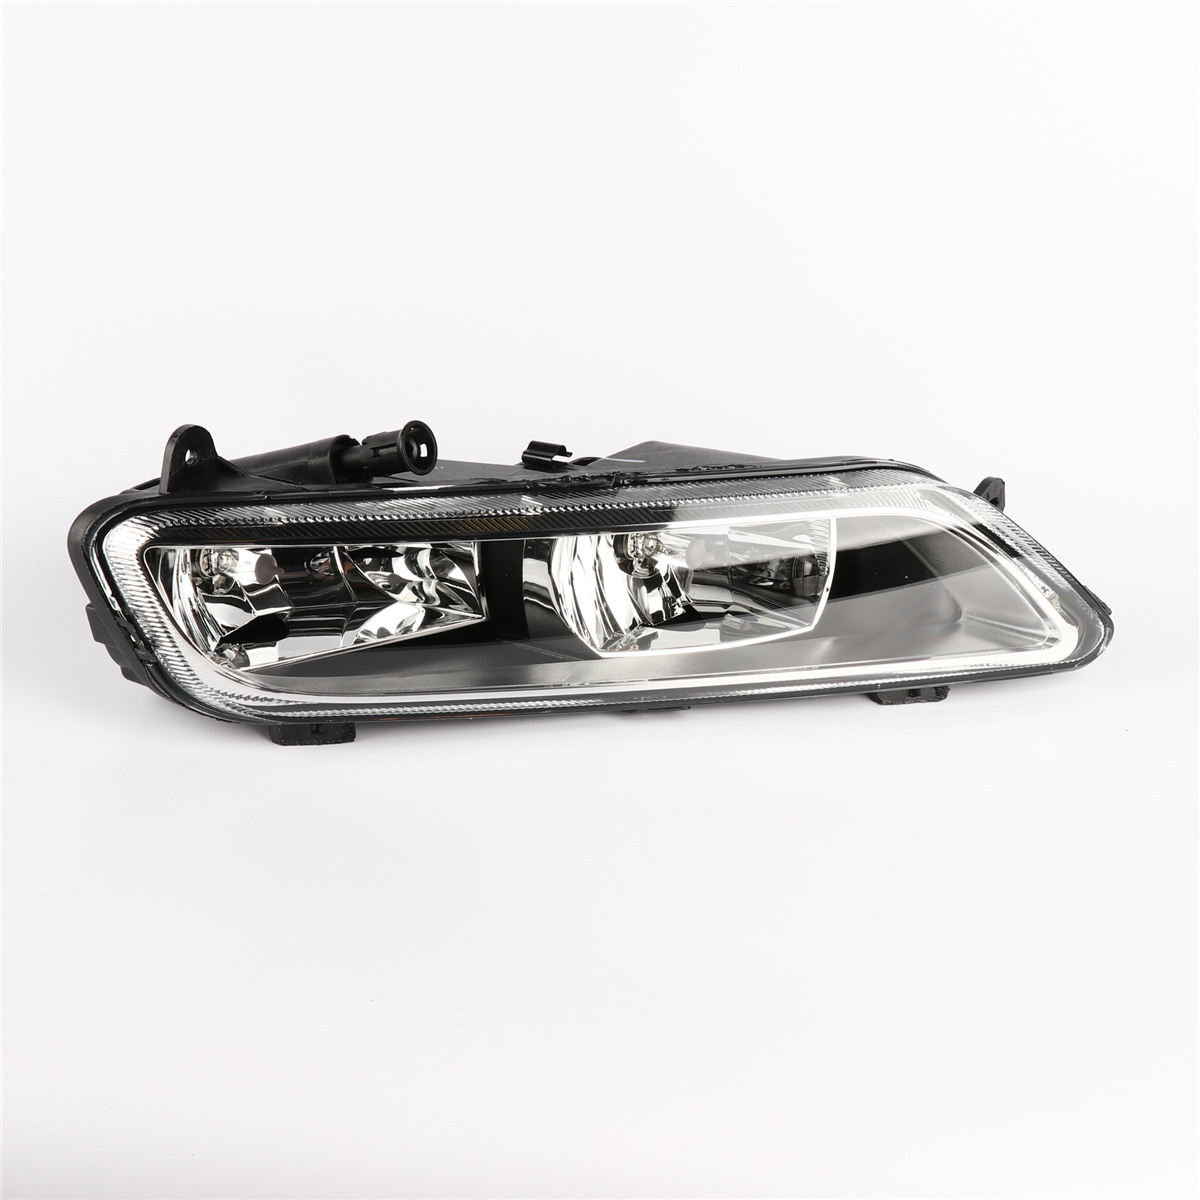 все цены на 1PCS OEM Front Left Halogen Fog Lamp Light 3AD 941 661 For VW Passat B7 онлайн